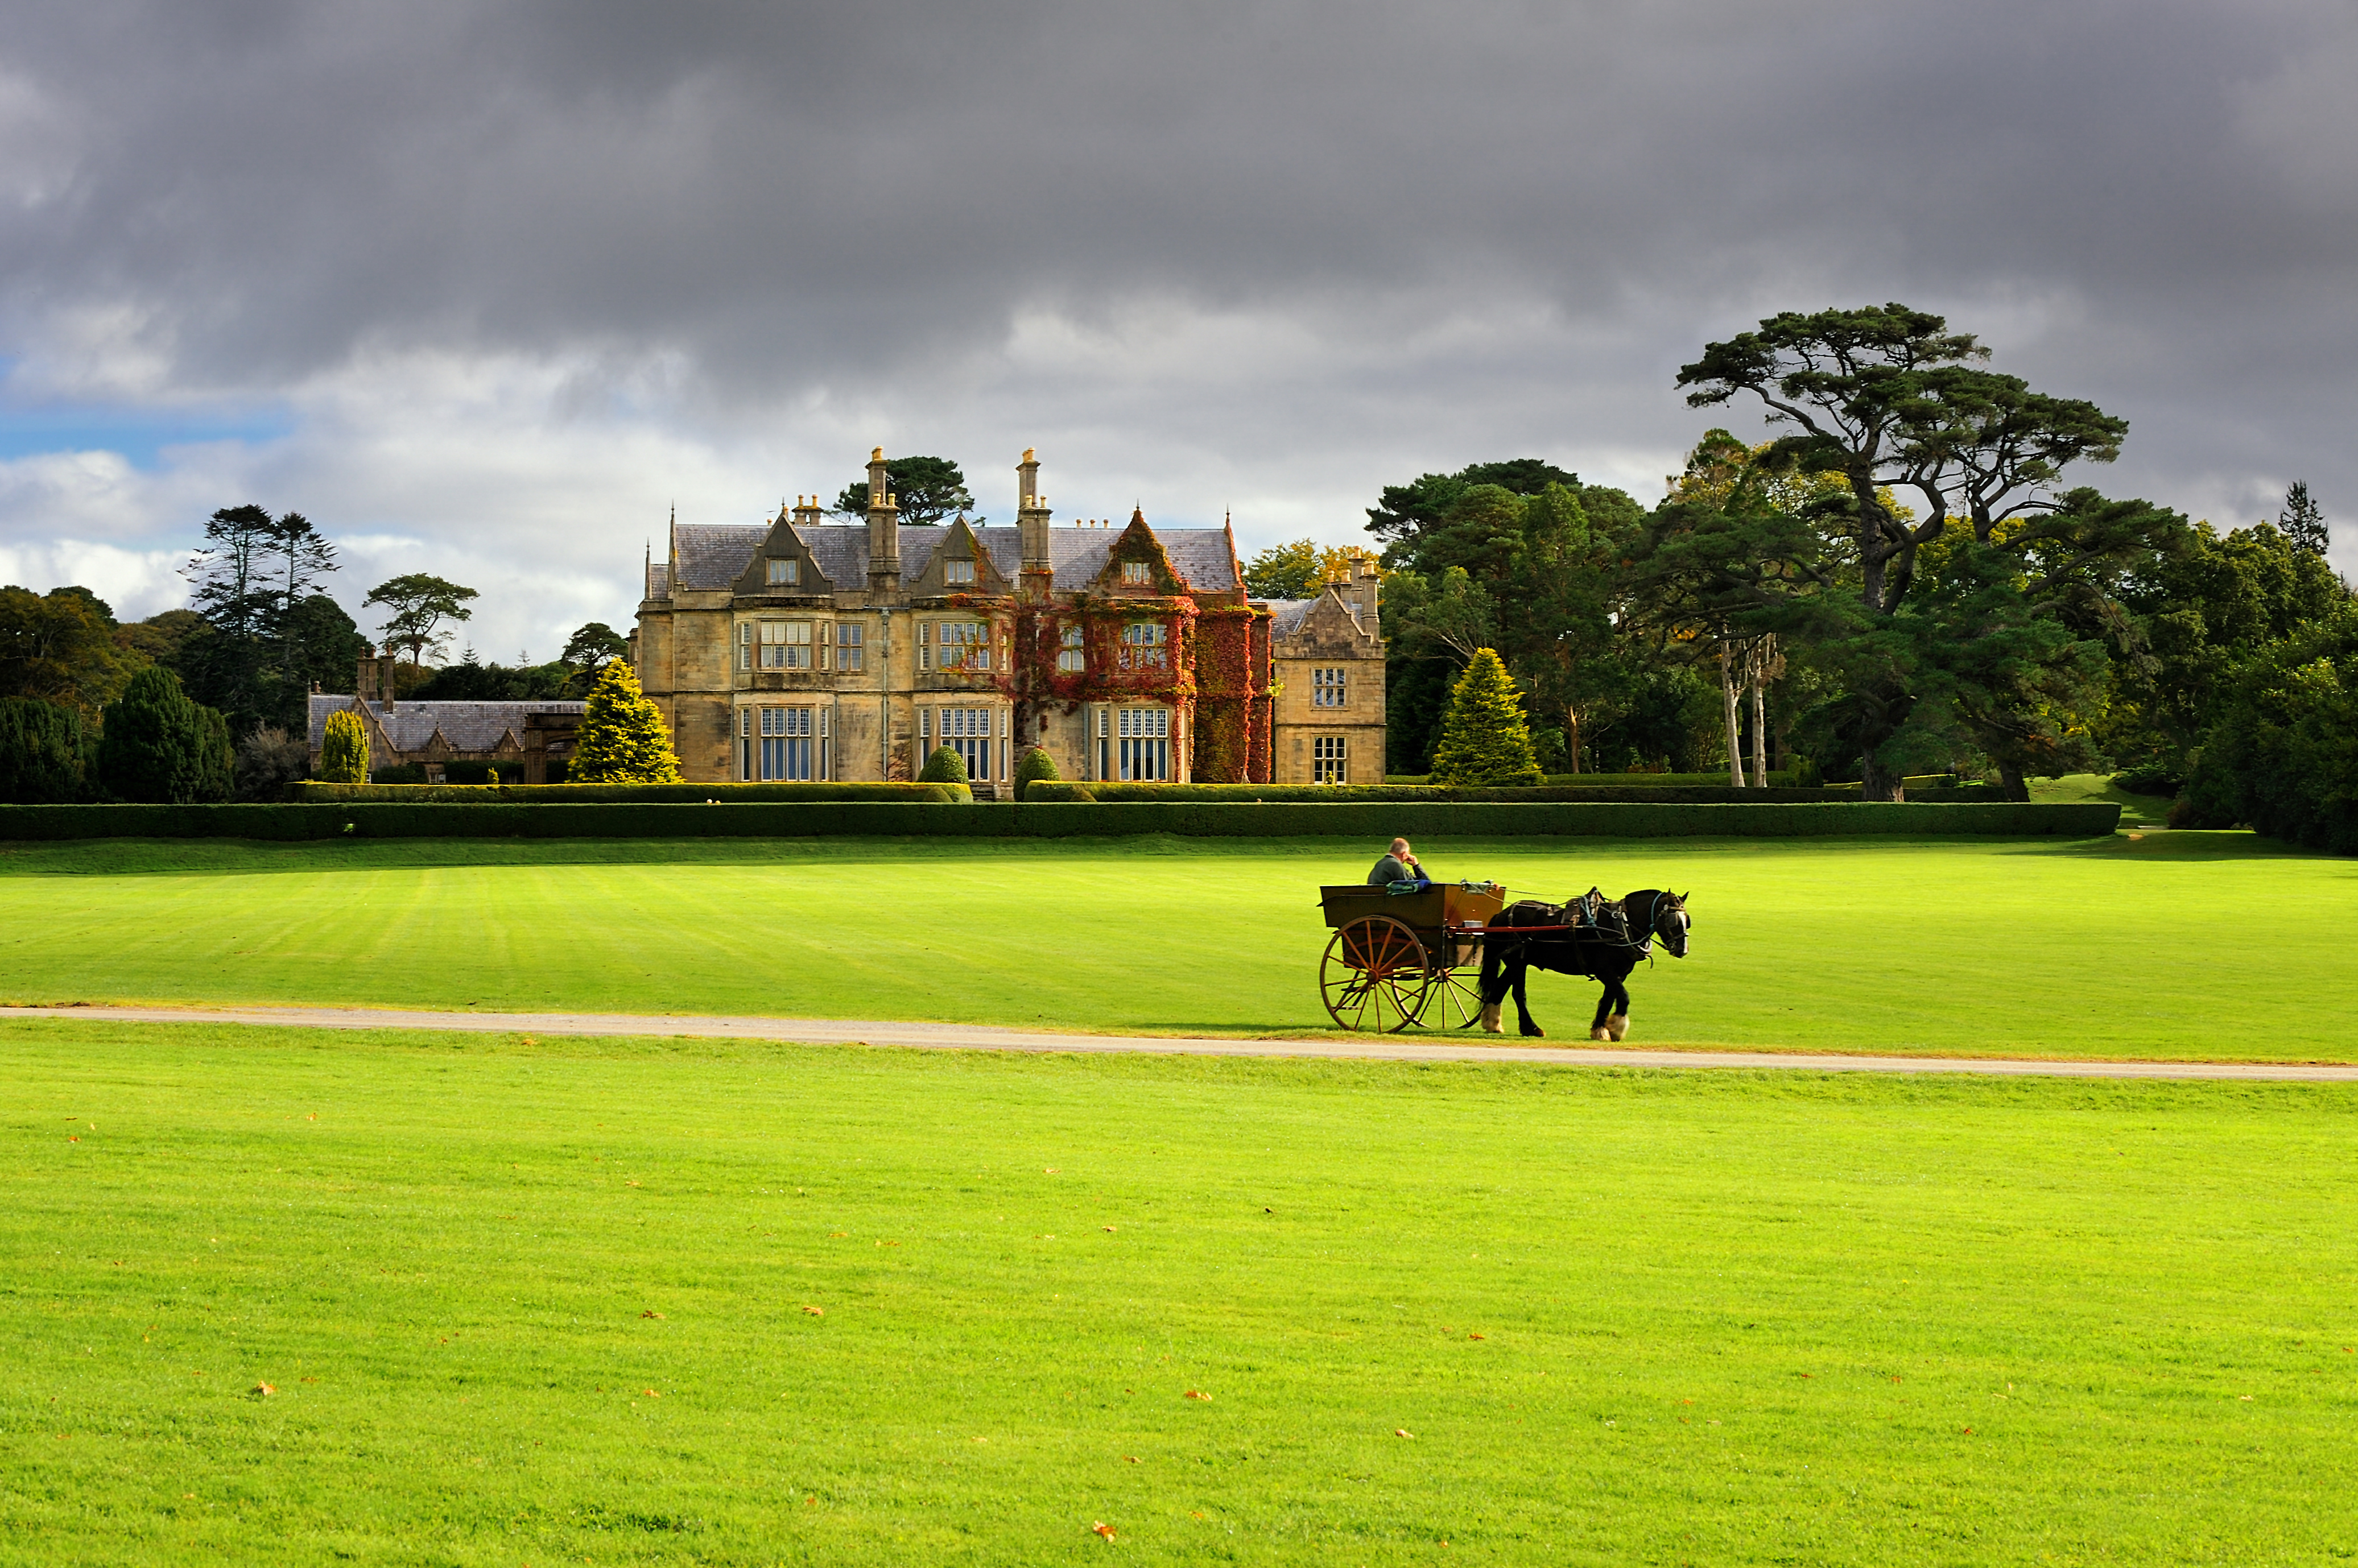 Irish Gardens, Houses and Horses: The Inside Track